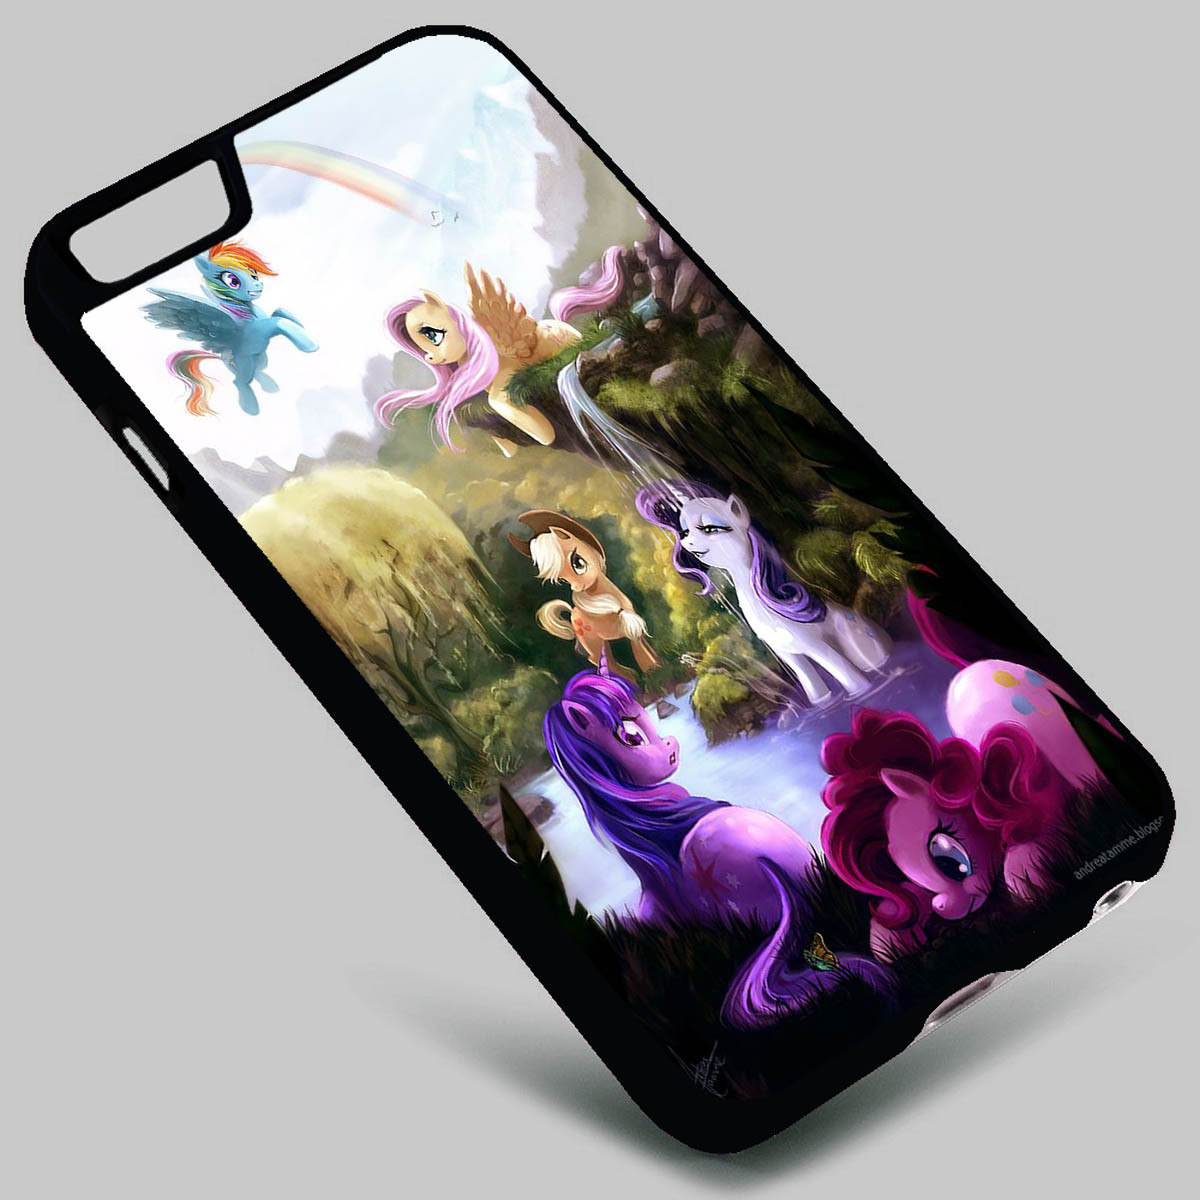 7e06075153fc Home · HARD CASE  My Little Pony Friendship is Magic (2) on your case  iphone 4 4s 5 5s 5c 6 6plus 7 Samsung Galaxy s3 s4 s5 s6 s7 HTC Case. Image  1